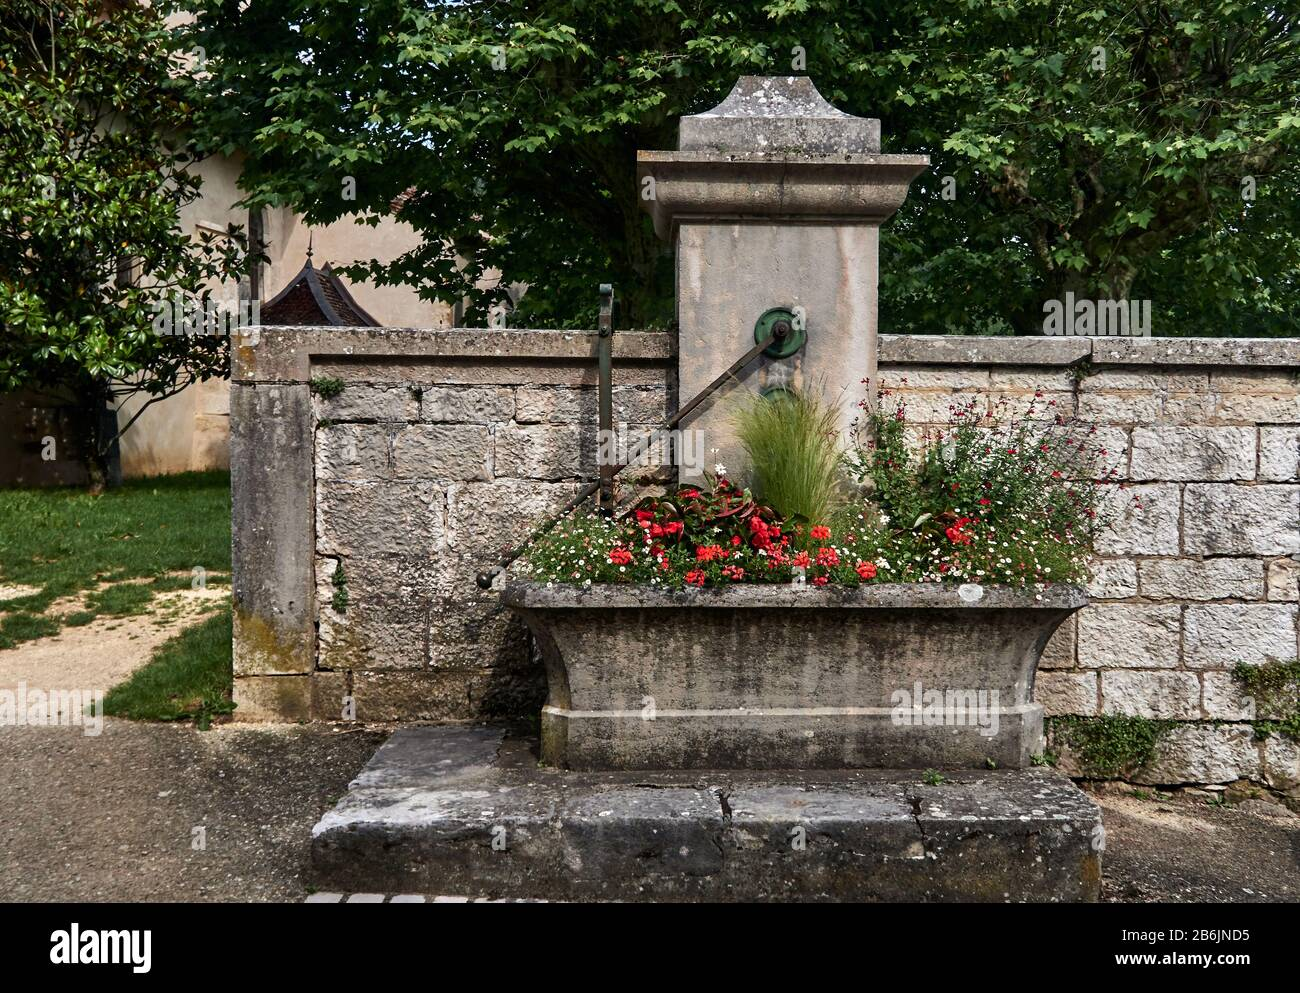 France, Ain departement, Auvergne - Rhone - Alpes région. The old stone water pump and its flowery trough on the church square in the Treffort medieval village hung on the first height of the Jura massif, Stock Photo